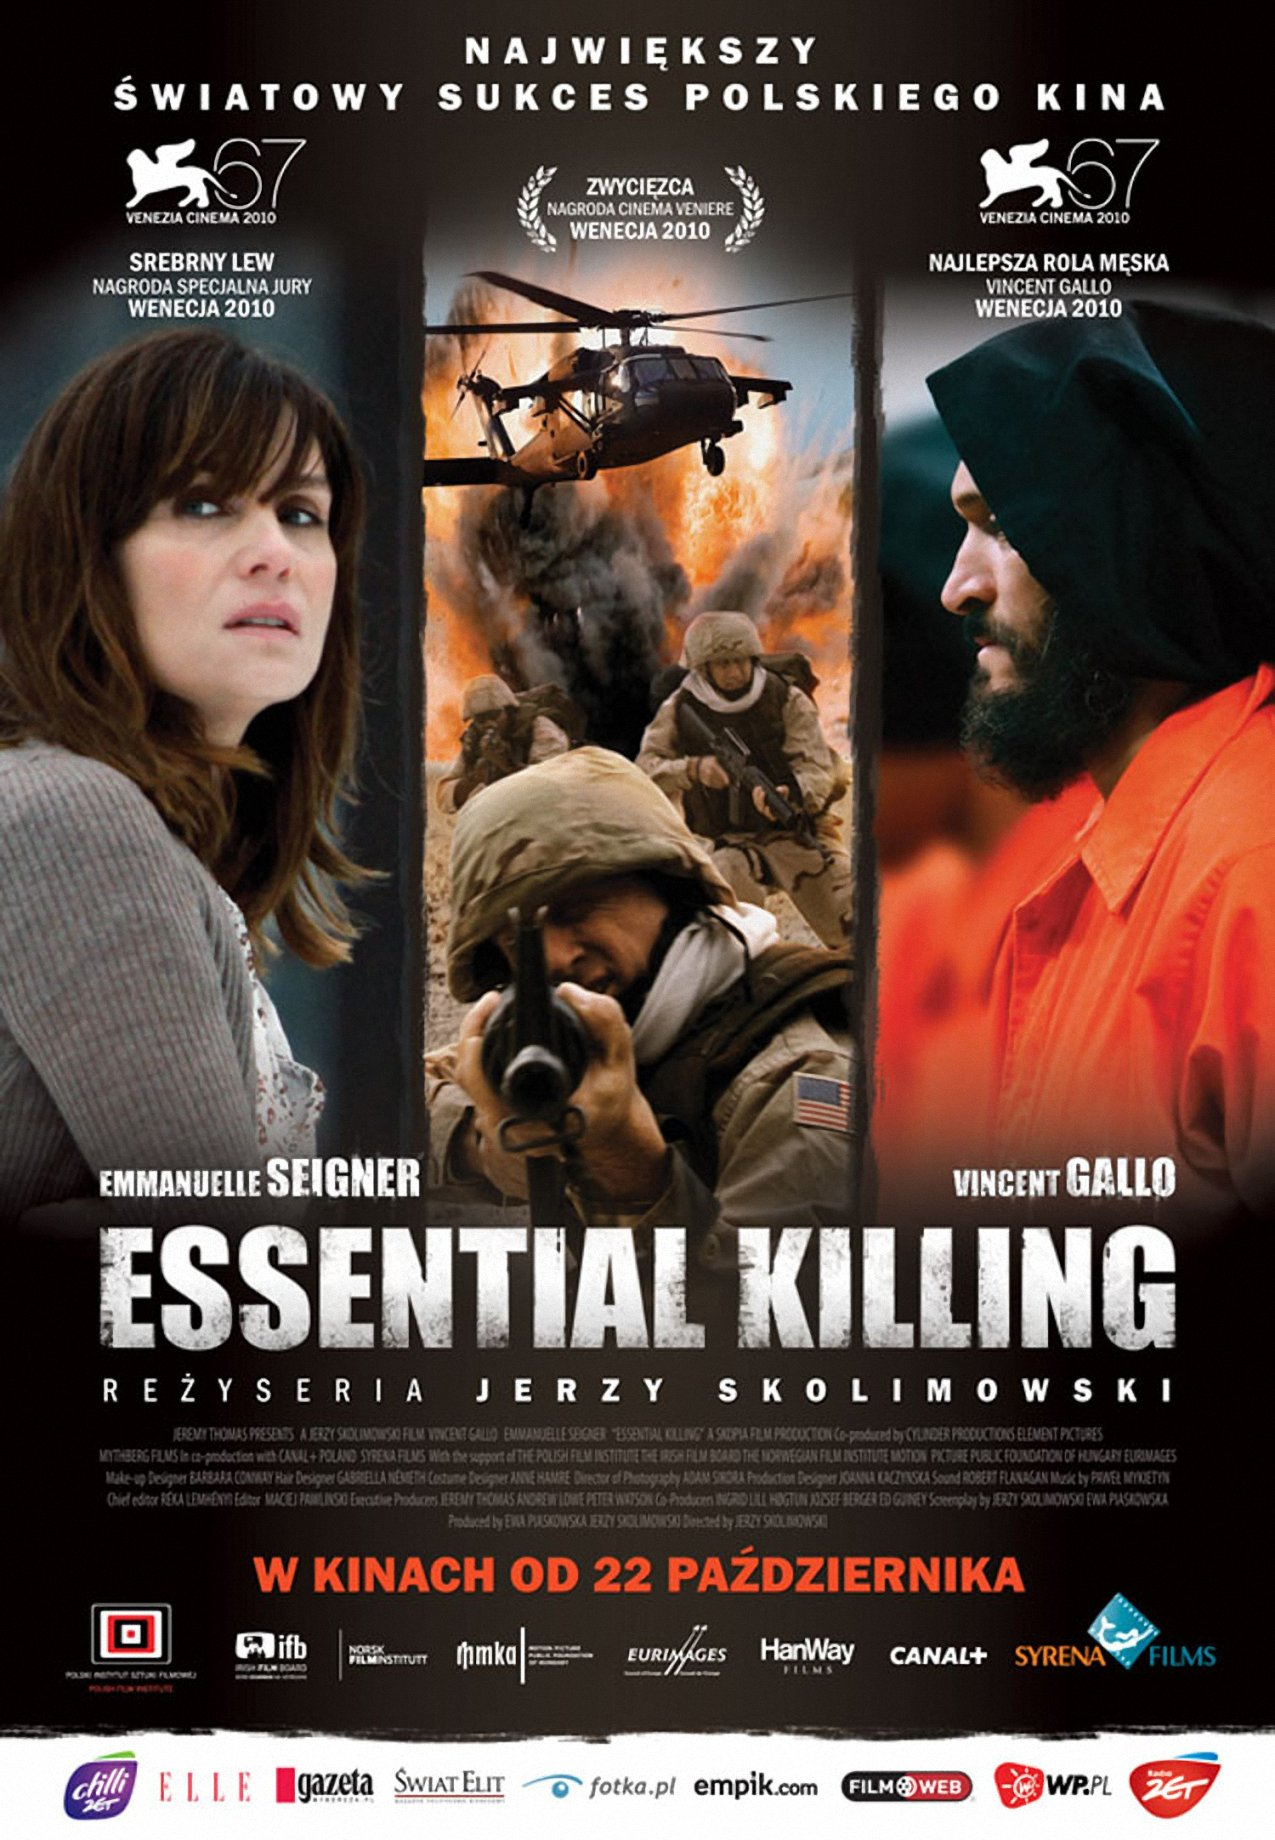 Essential Killing (2010)